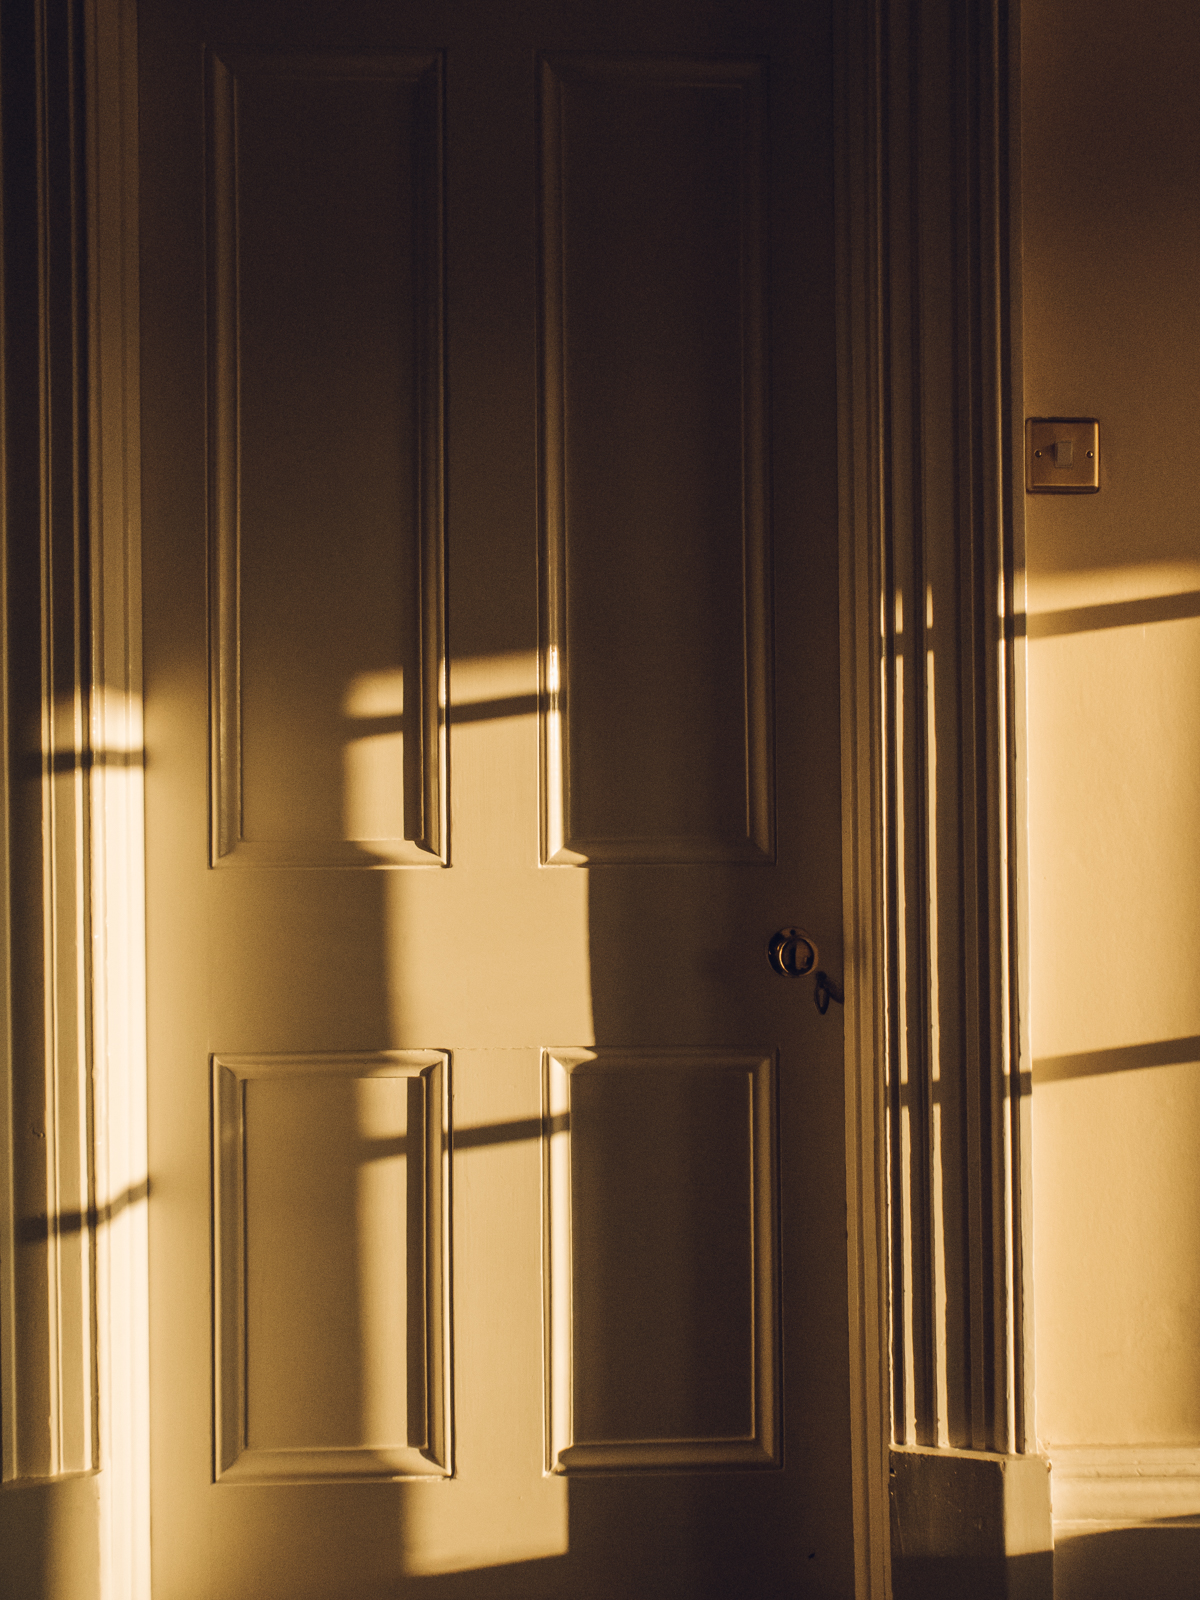 Golden hour light and shadows.